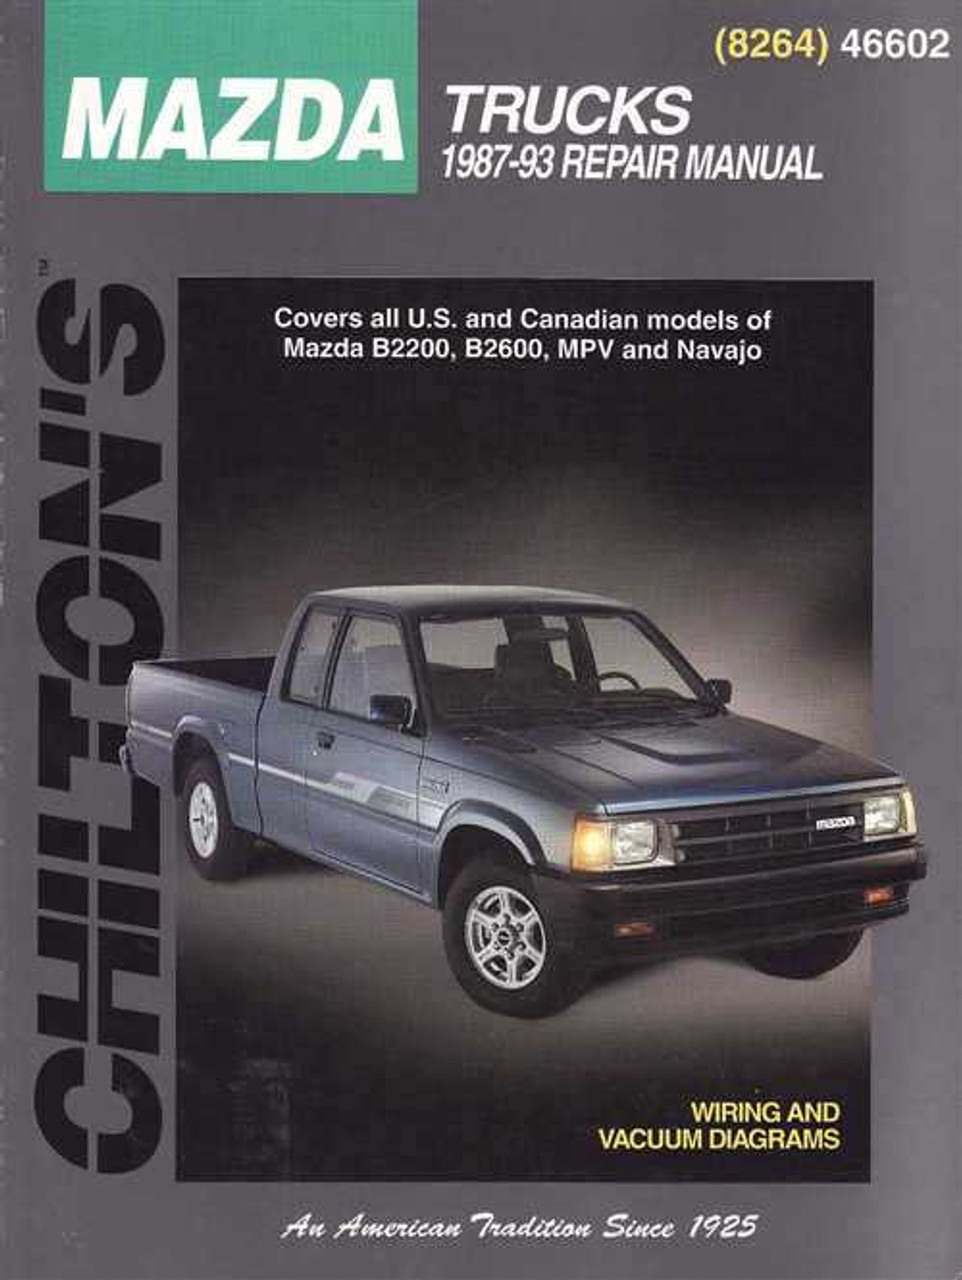 Mazda Trucks 1987 1993 Workshop Manualrhautomotobookshopau: 1987 Mazda Pick Up Wiring Diagram At Gmaili.net